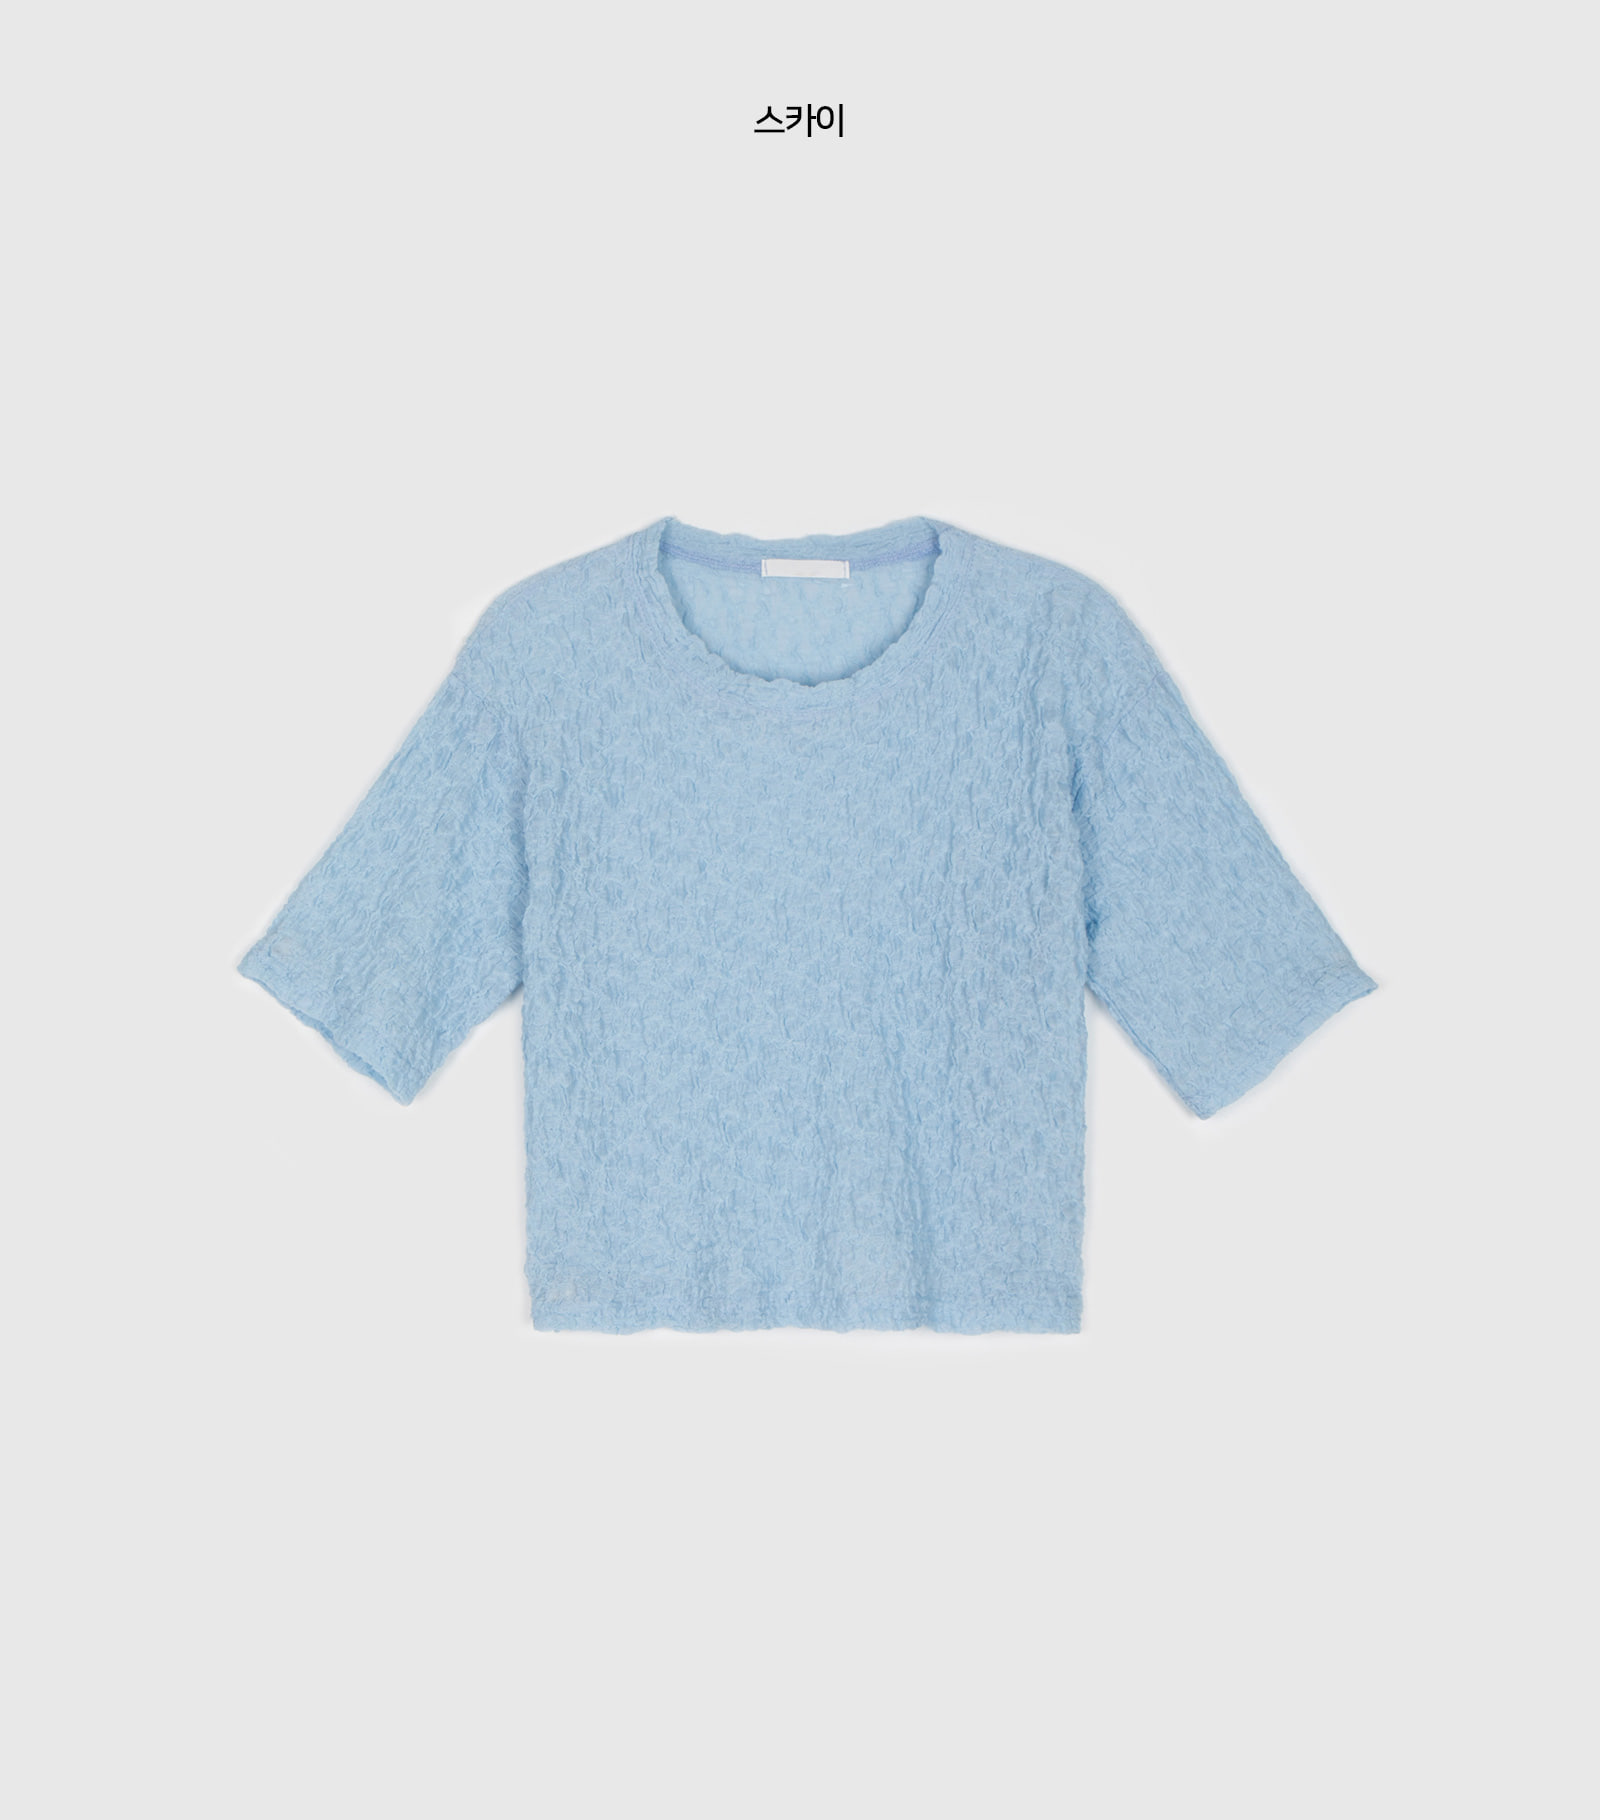 Crease cropped round-neck T-shirt